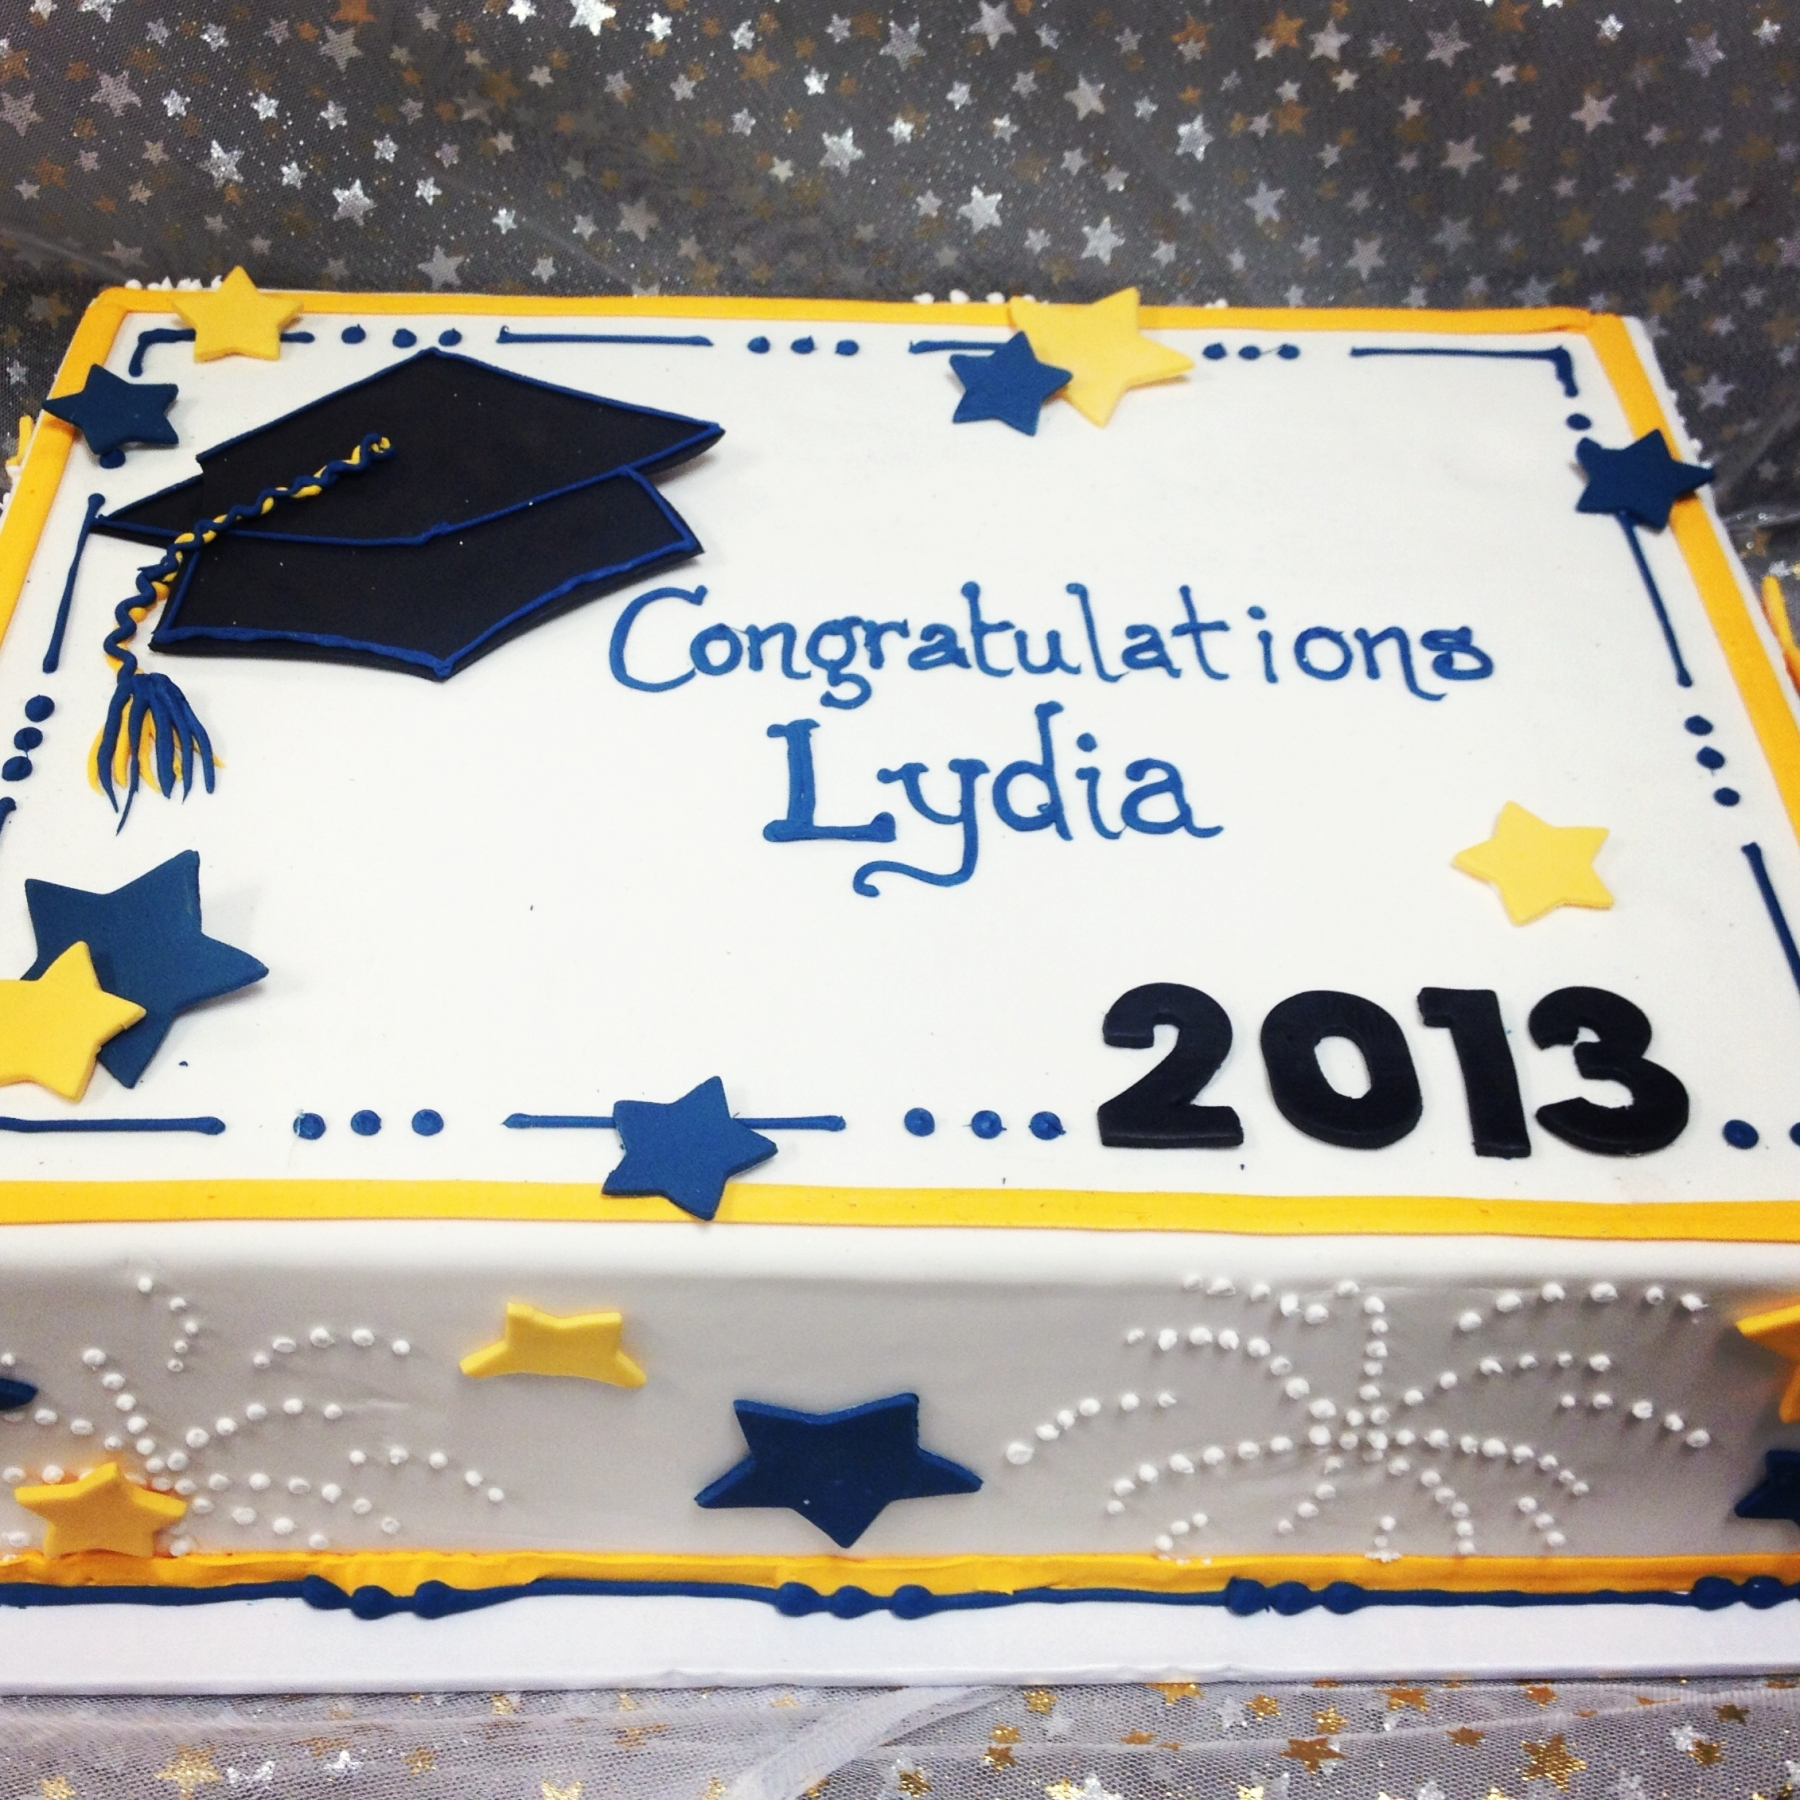 1000+ images about graduation party ideas on Pinterest ...